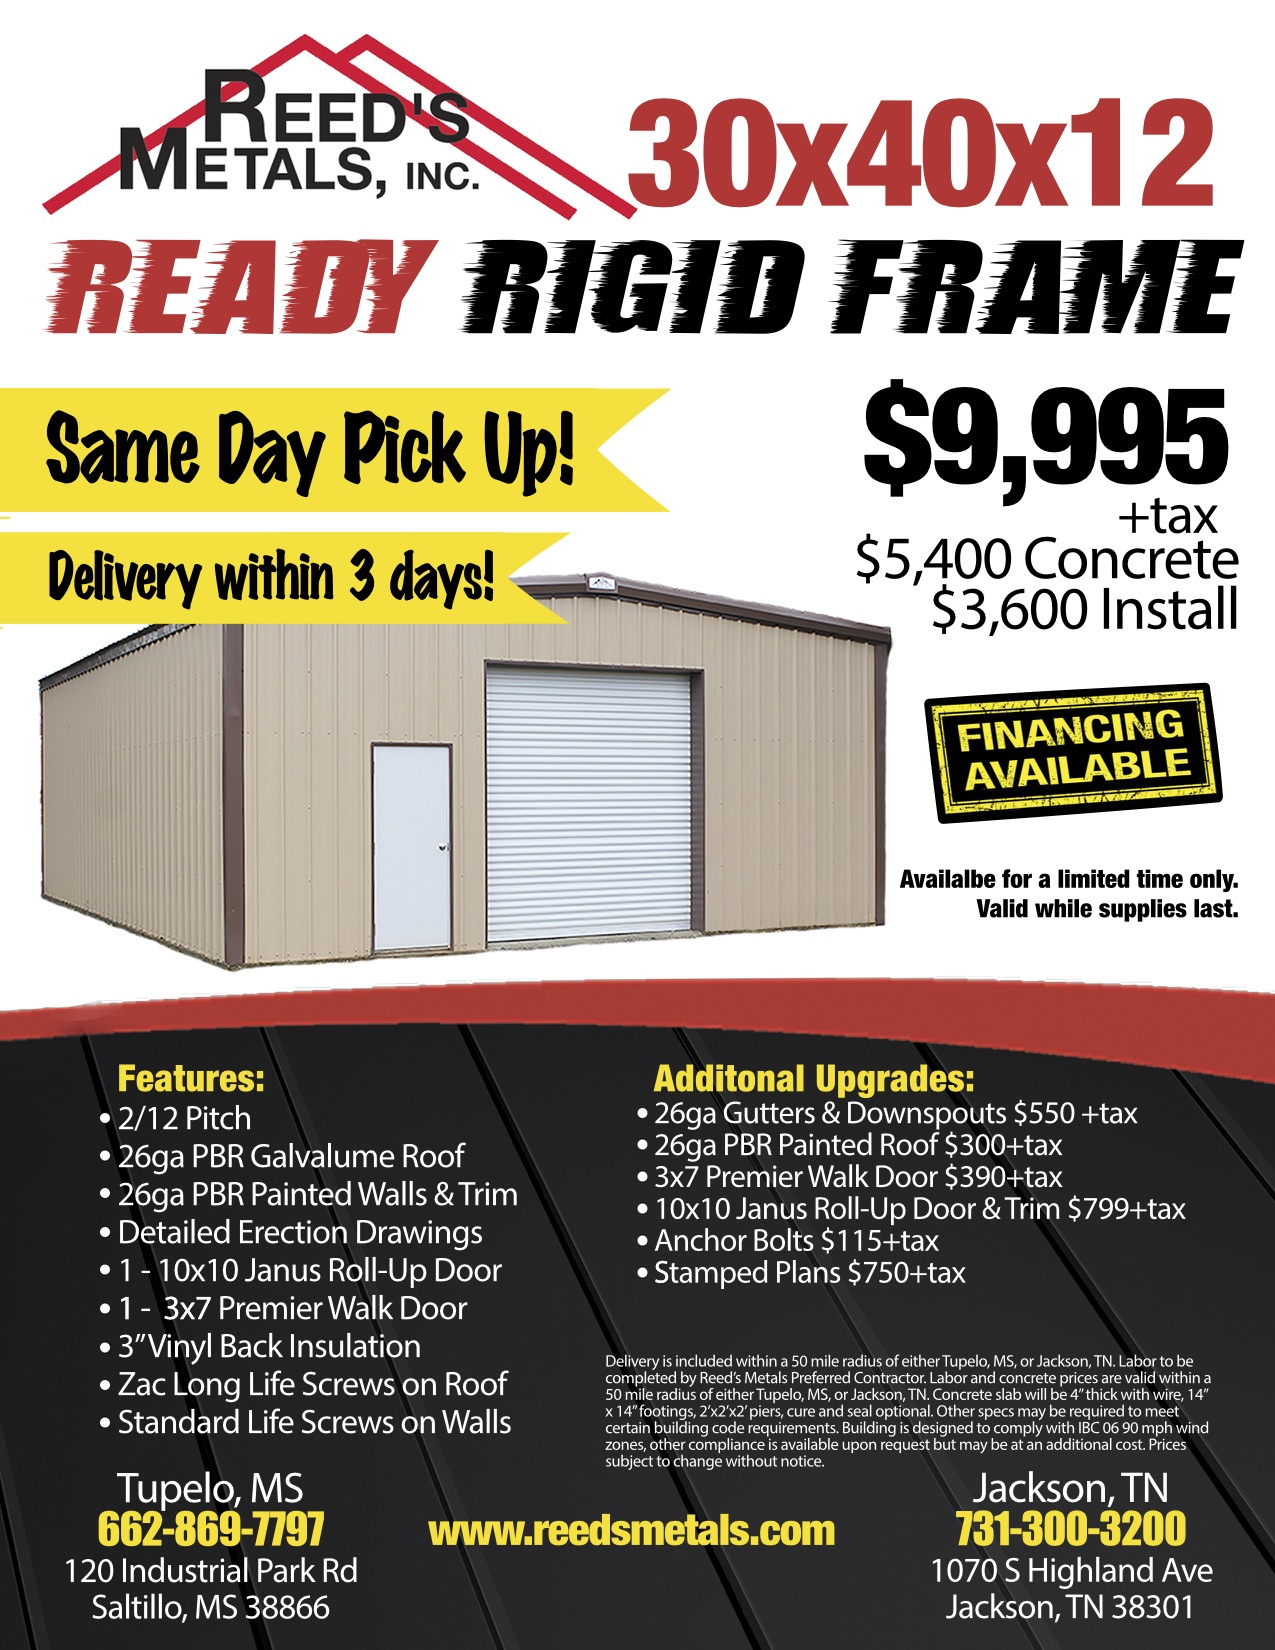 Jackson - Ready Rigid Frame